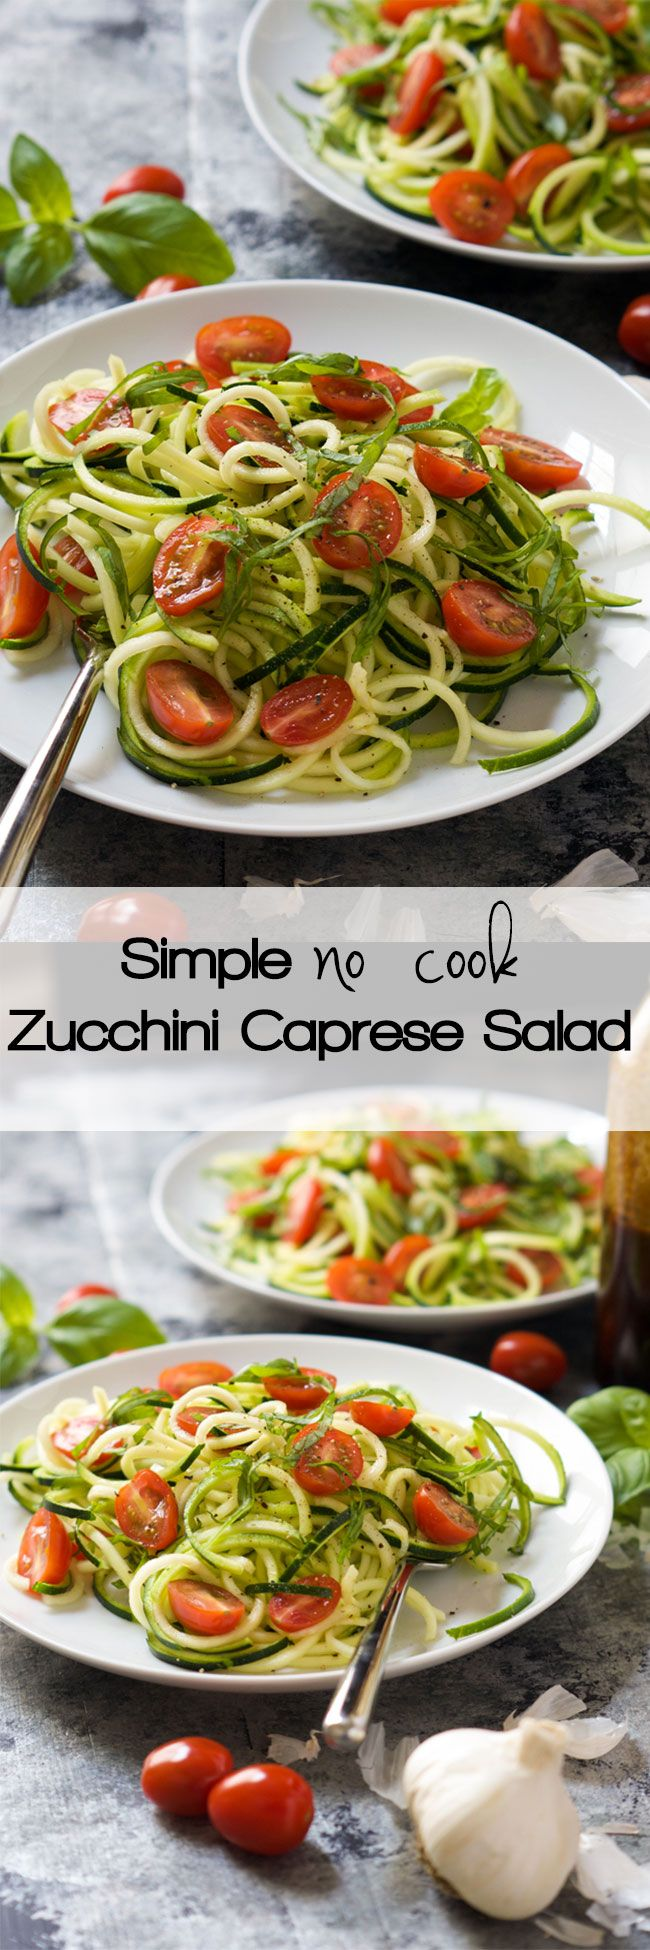 ... Zucchini Salad on Pinterest | Salad, Zucchini and Raw Zucchini Salad